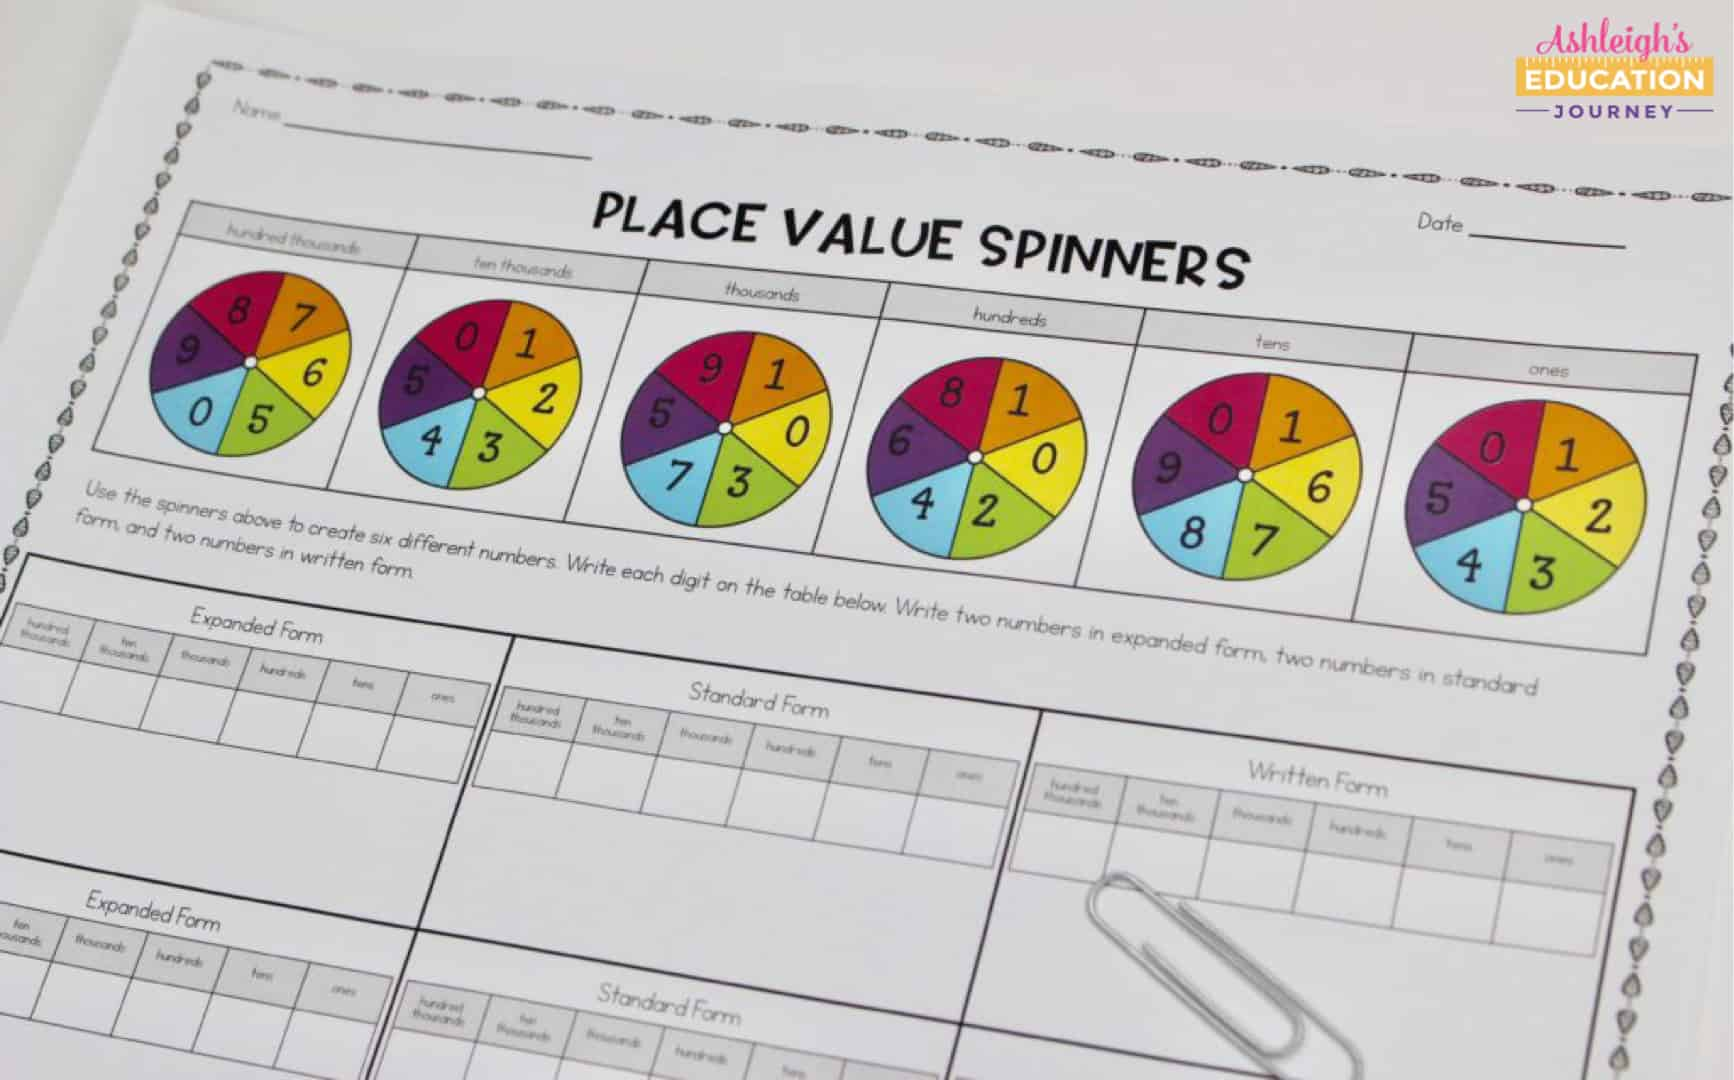 Place value spinners worksheet with colorful wheels representing each value